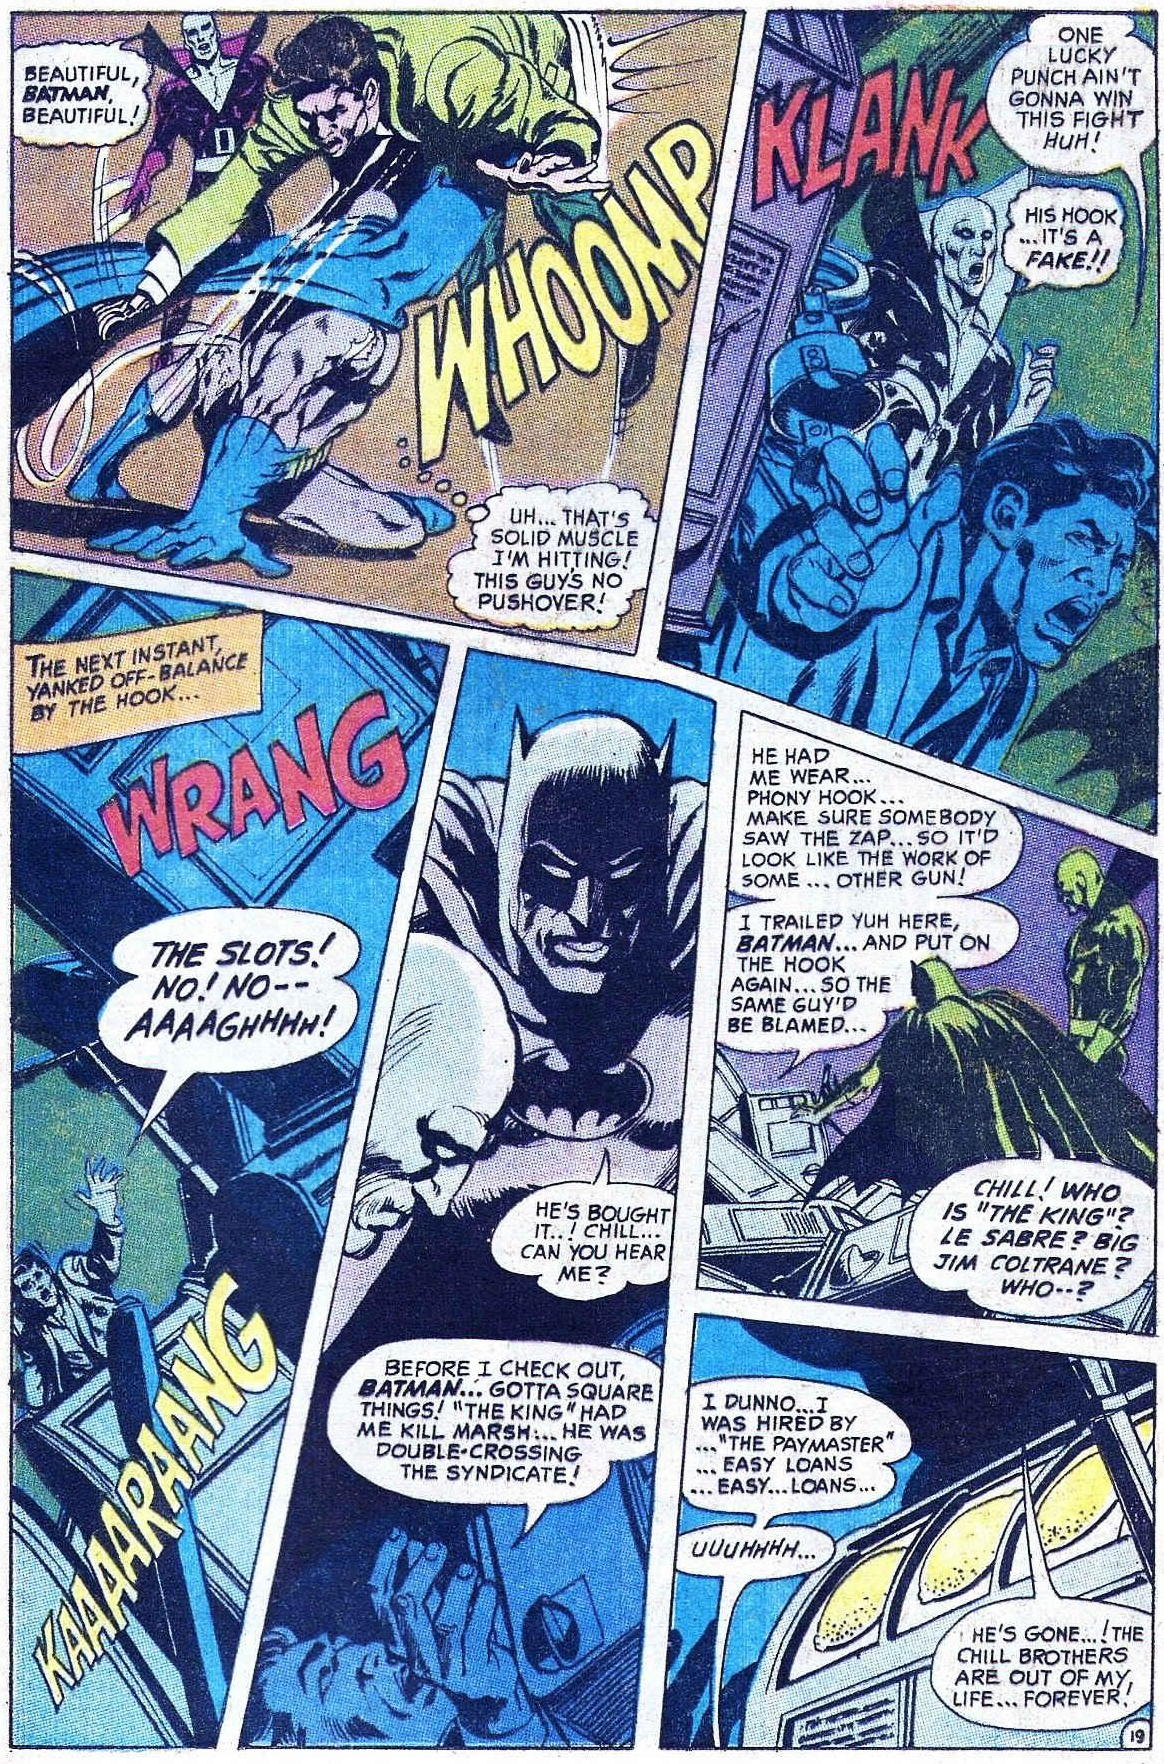 The Brave and the Bold #79 (Aug -Sept , 1968) | Attack of